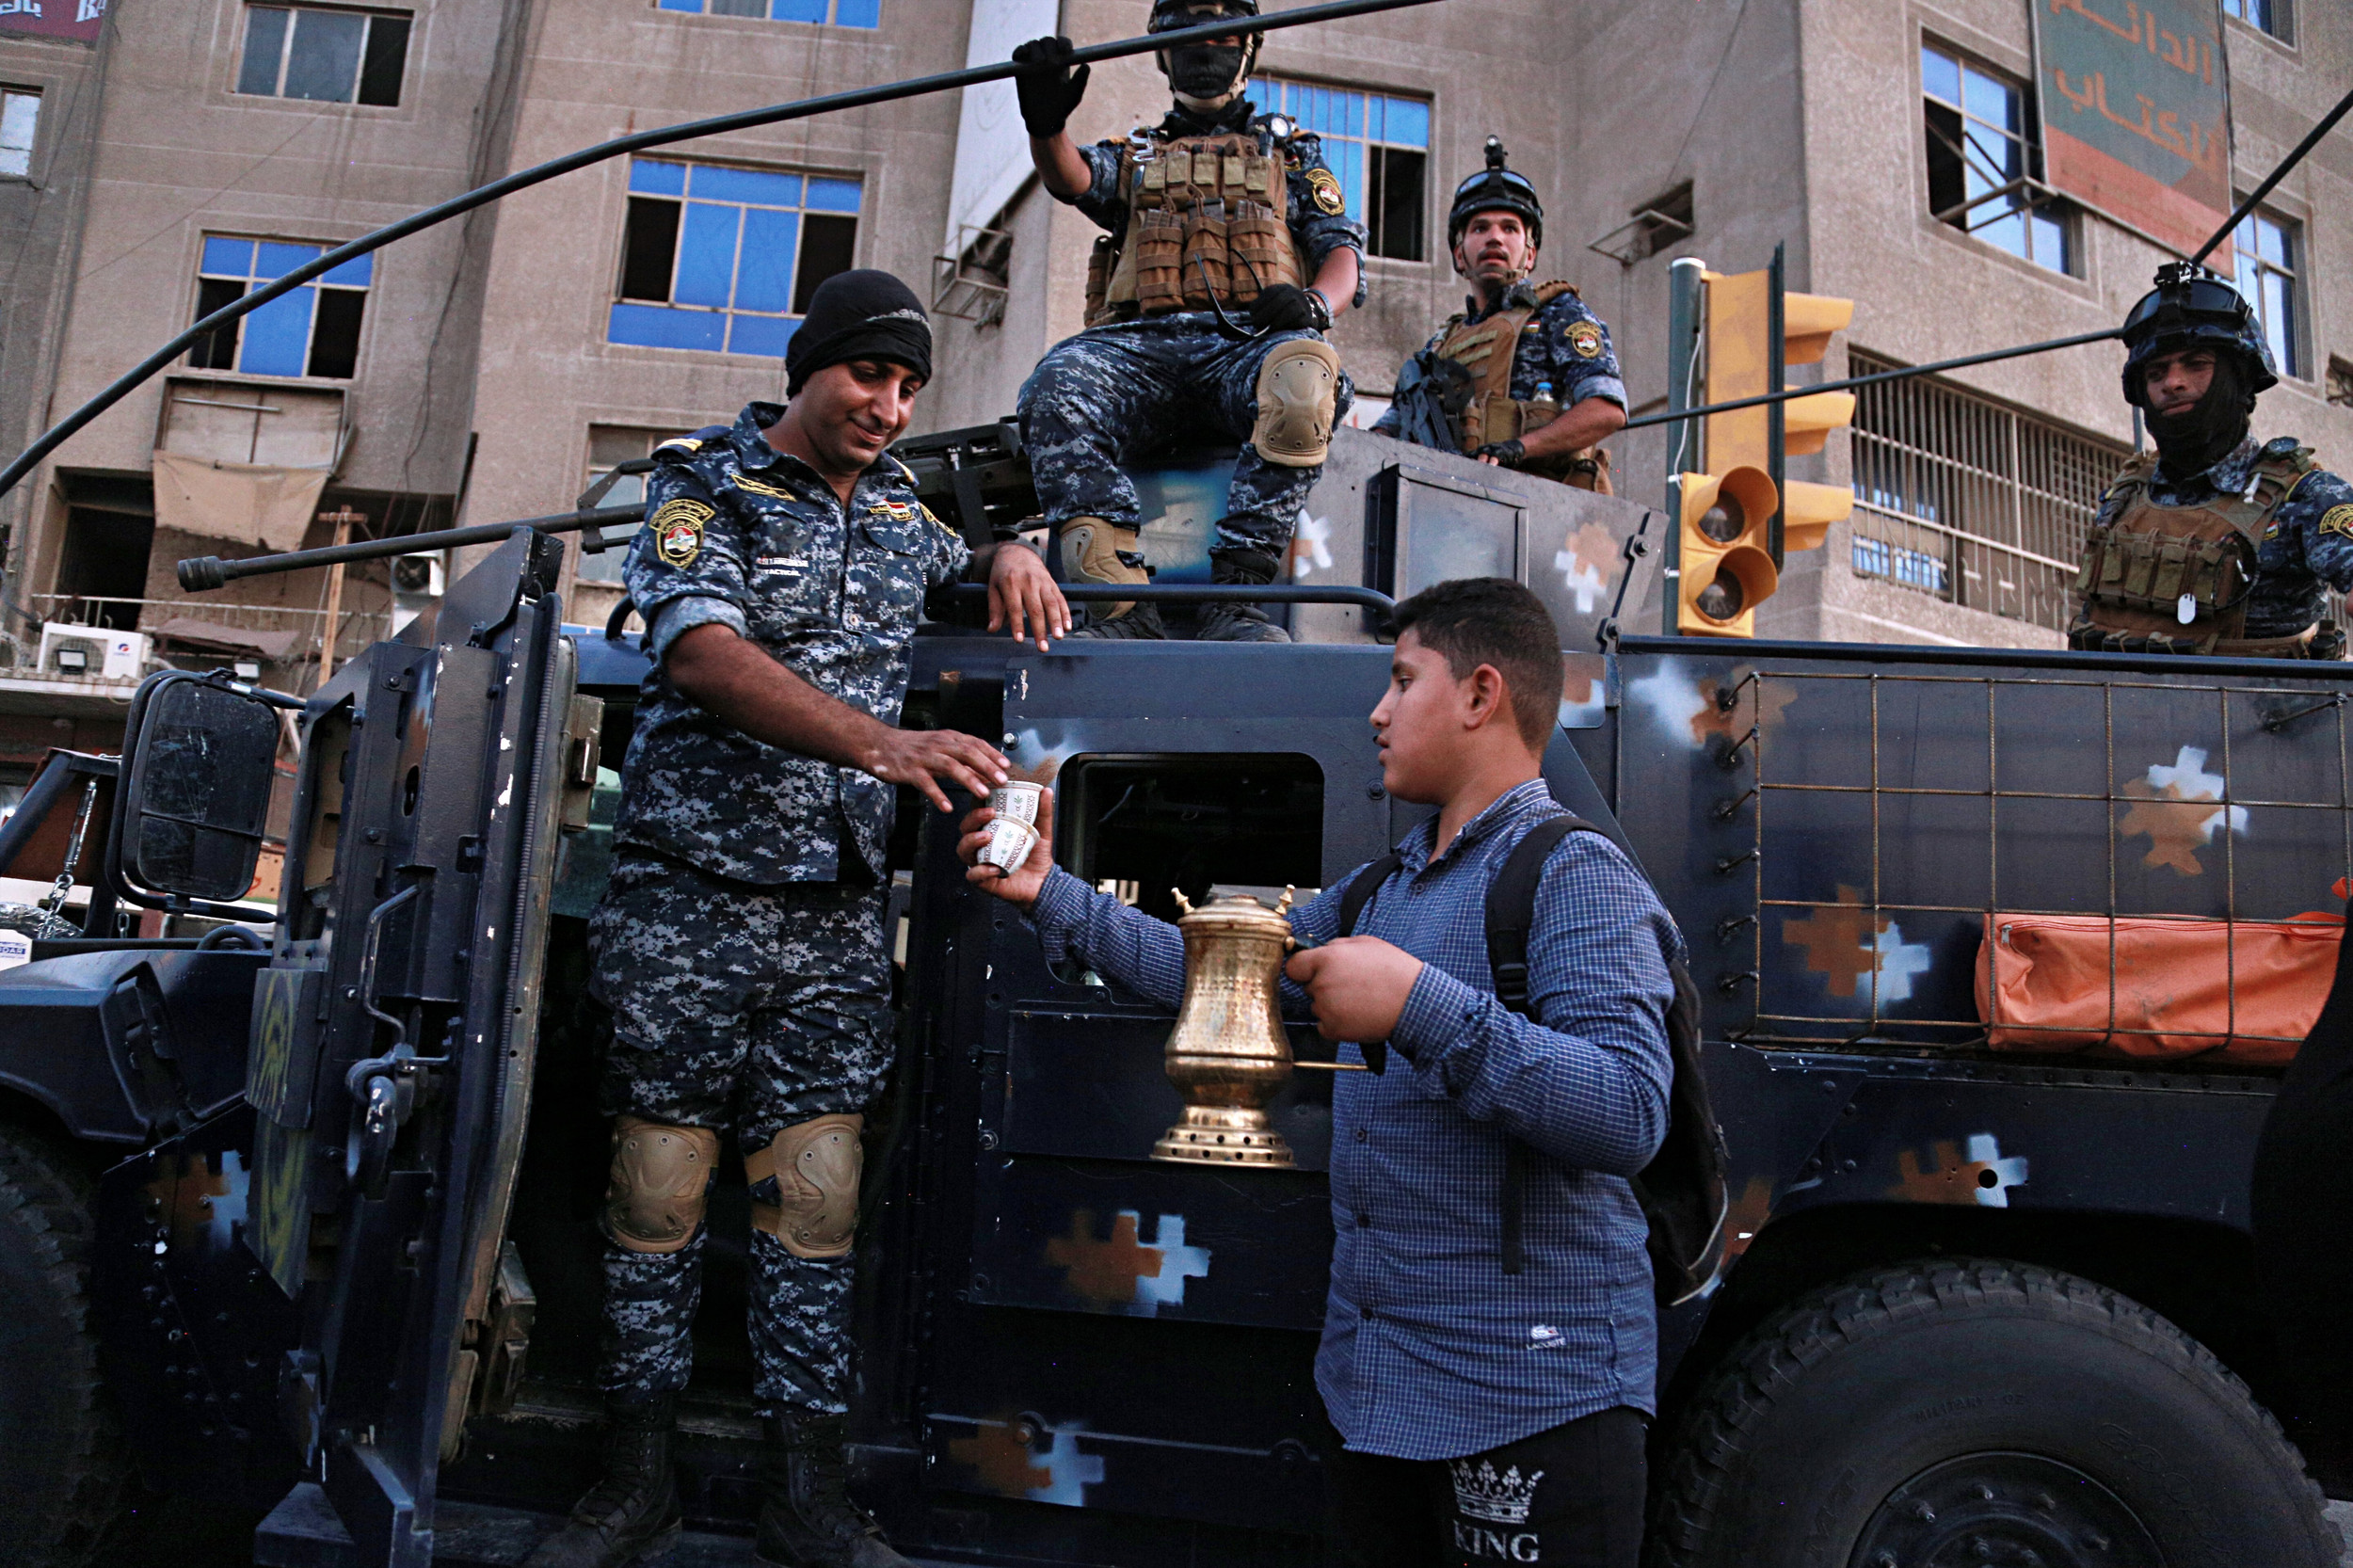 Iraqi police replacing army in volatile Baghdad neighborhood